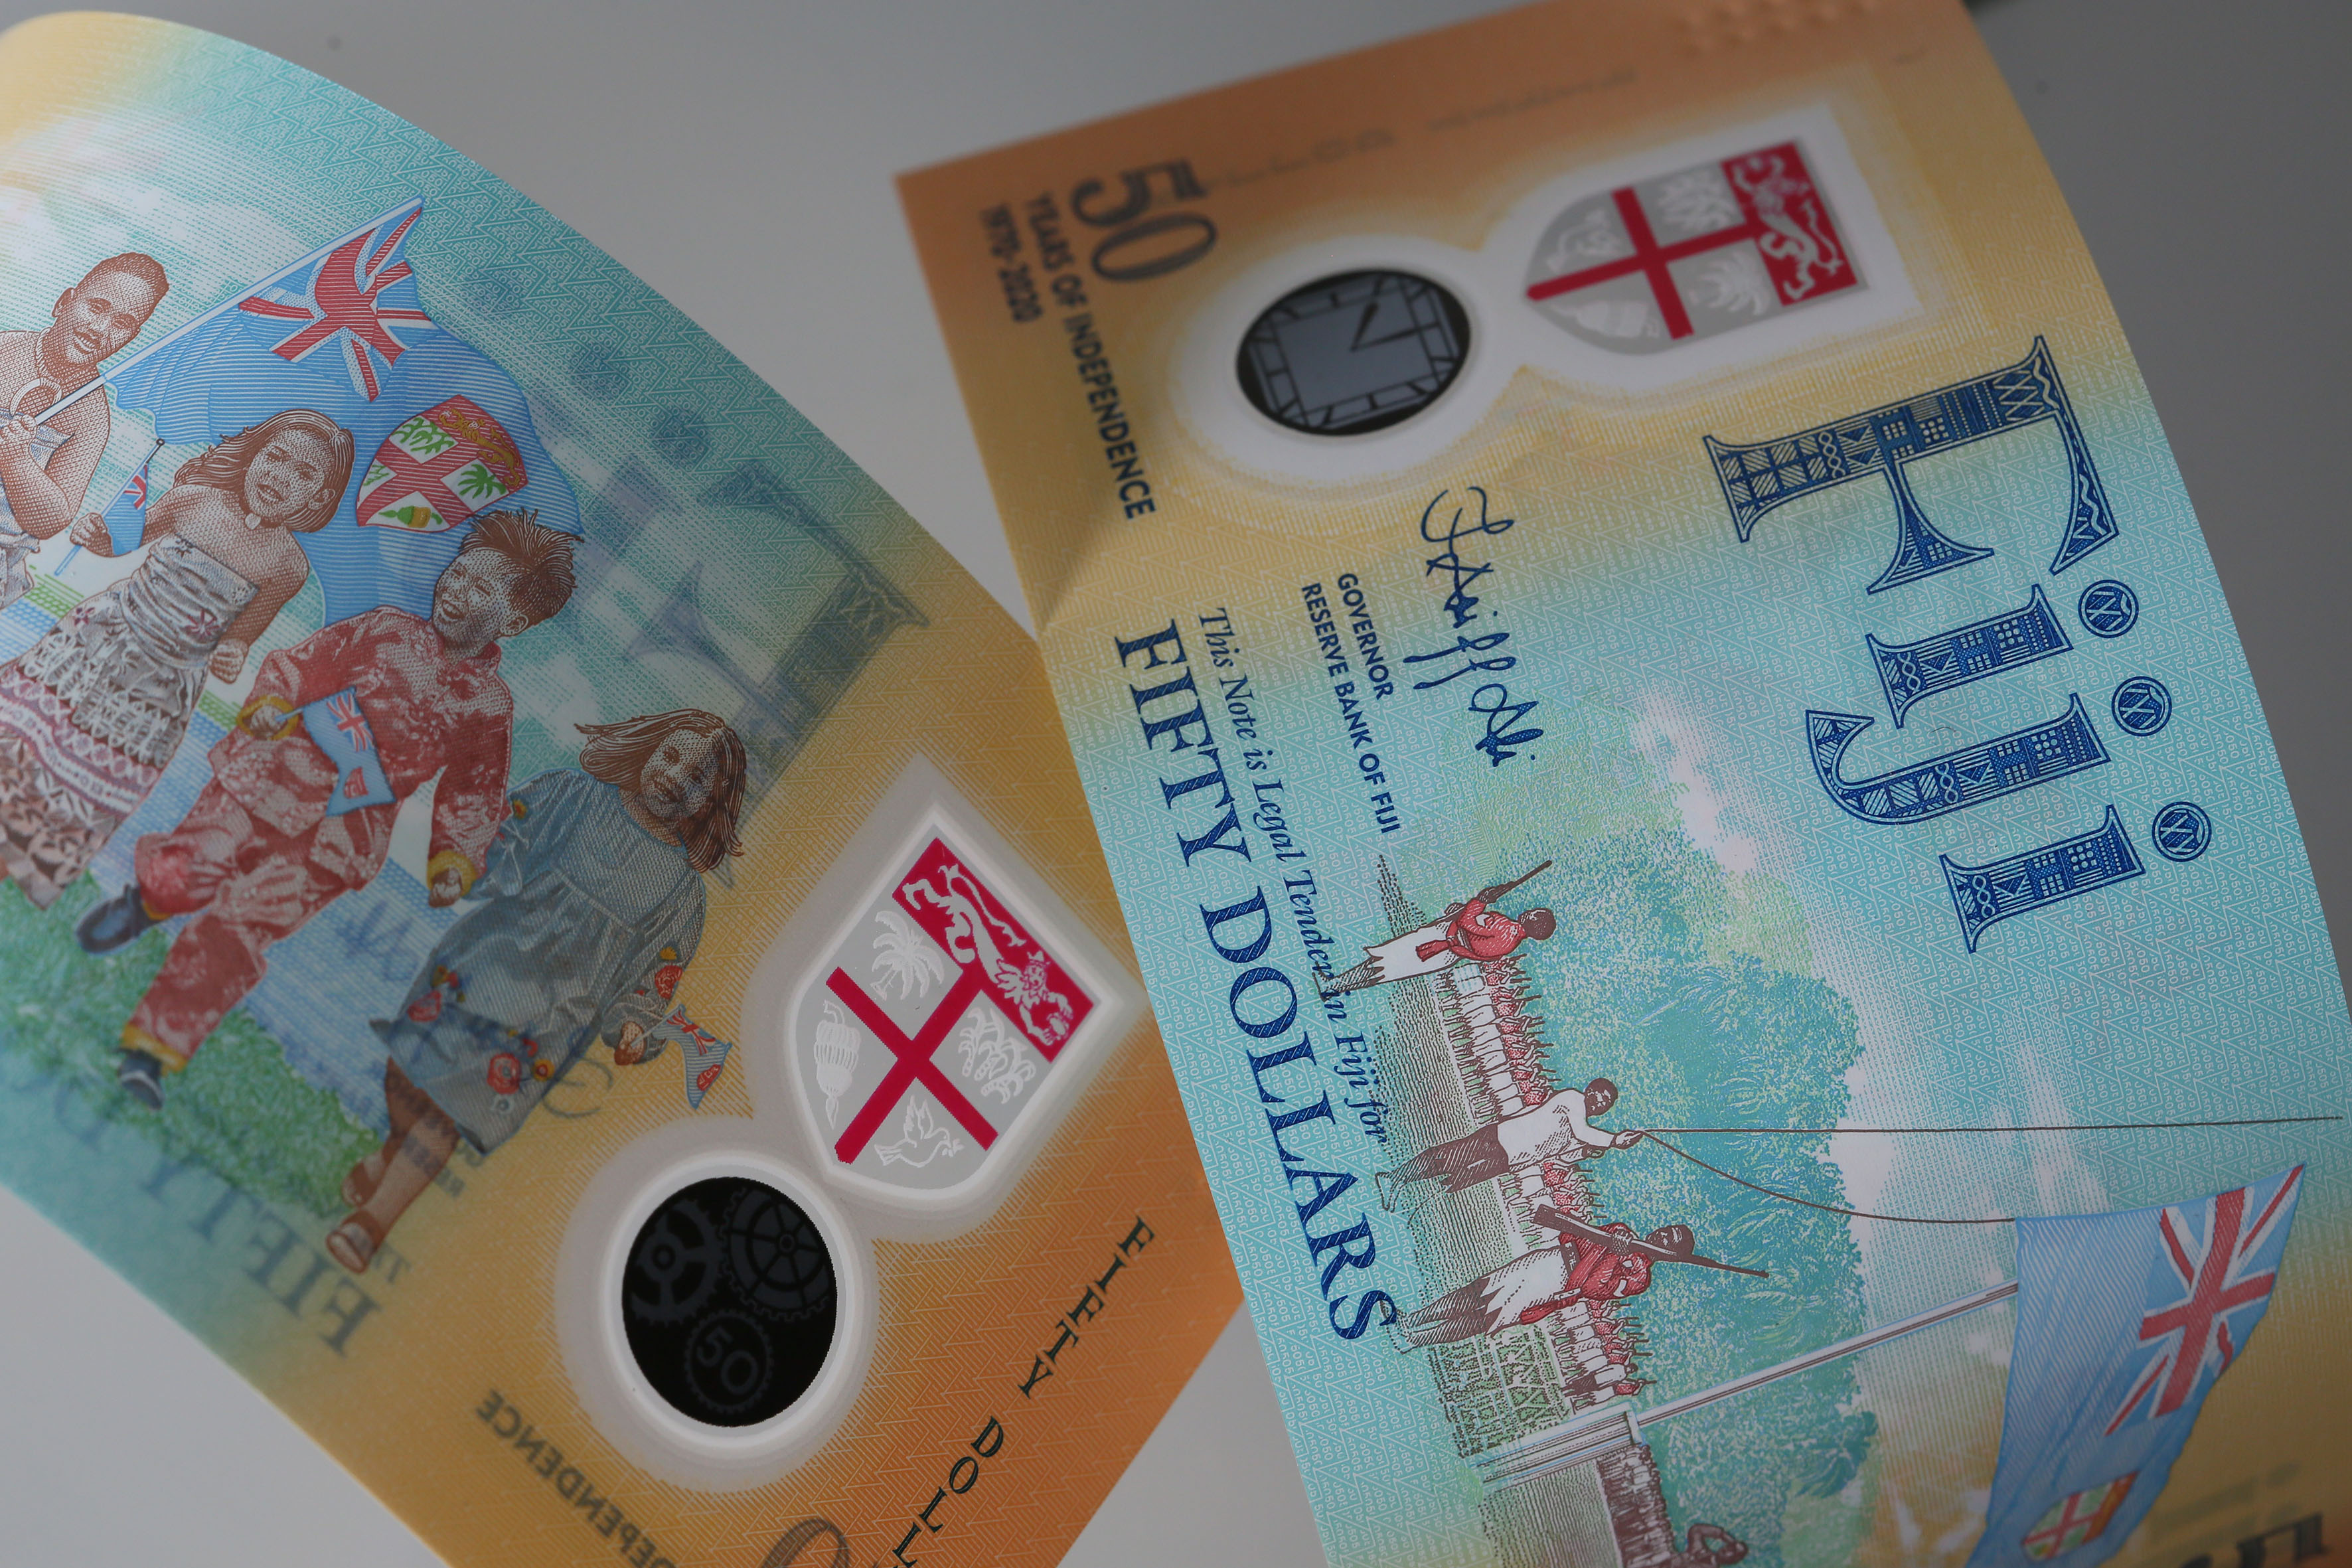 Fiji Launches Banknotes, Coins to Commemorate 50th Year of Independence